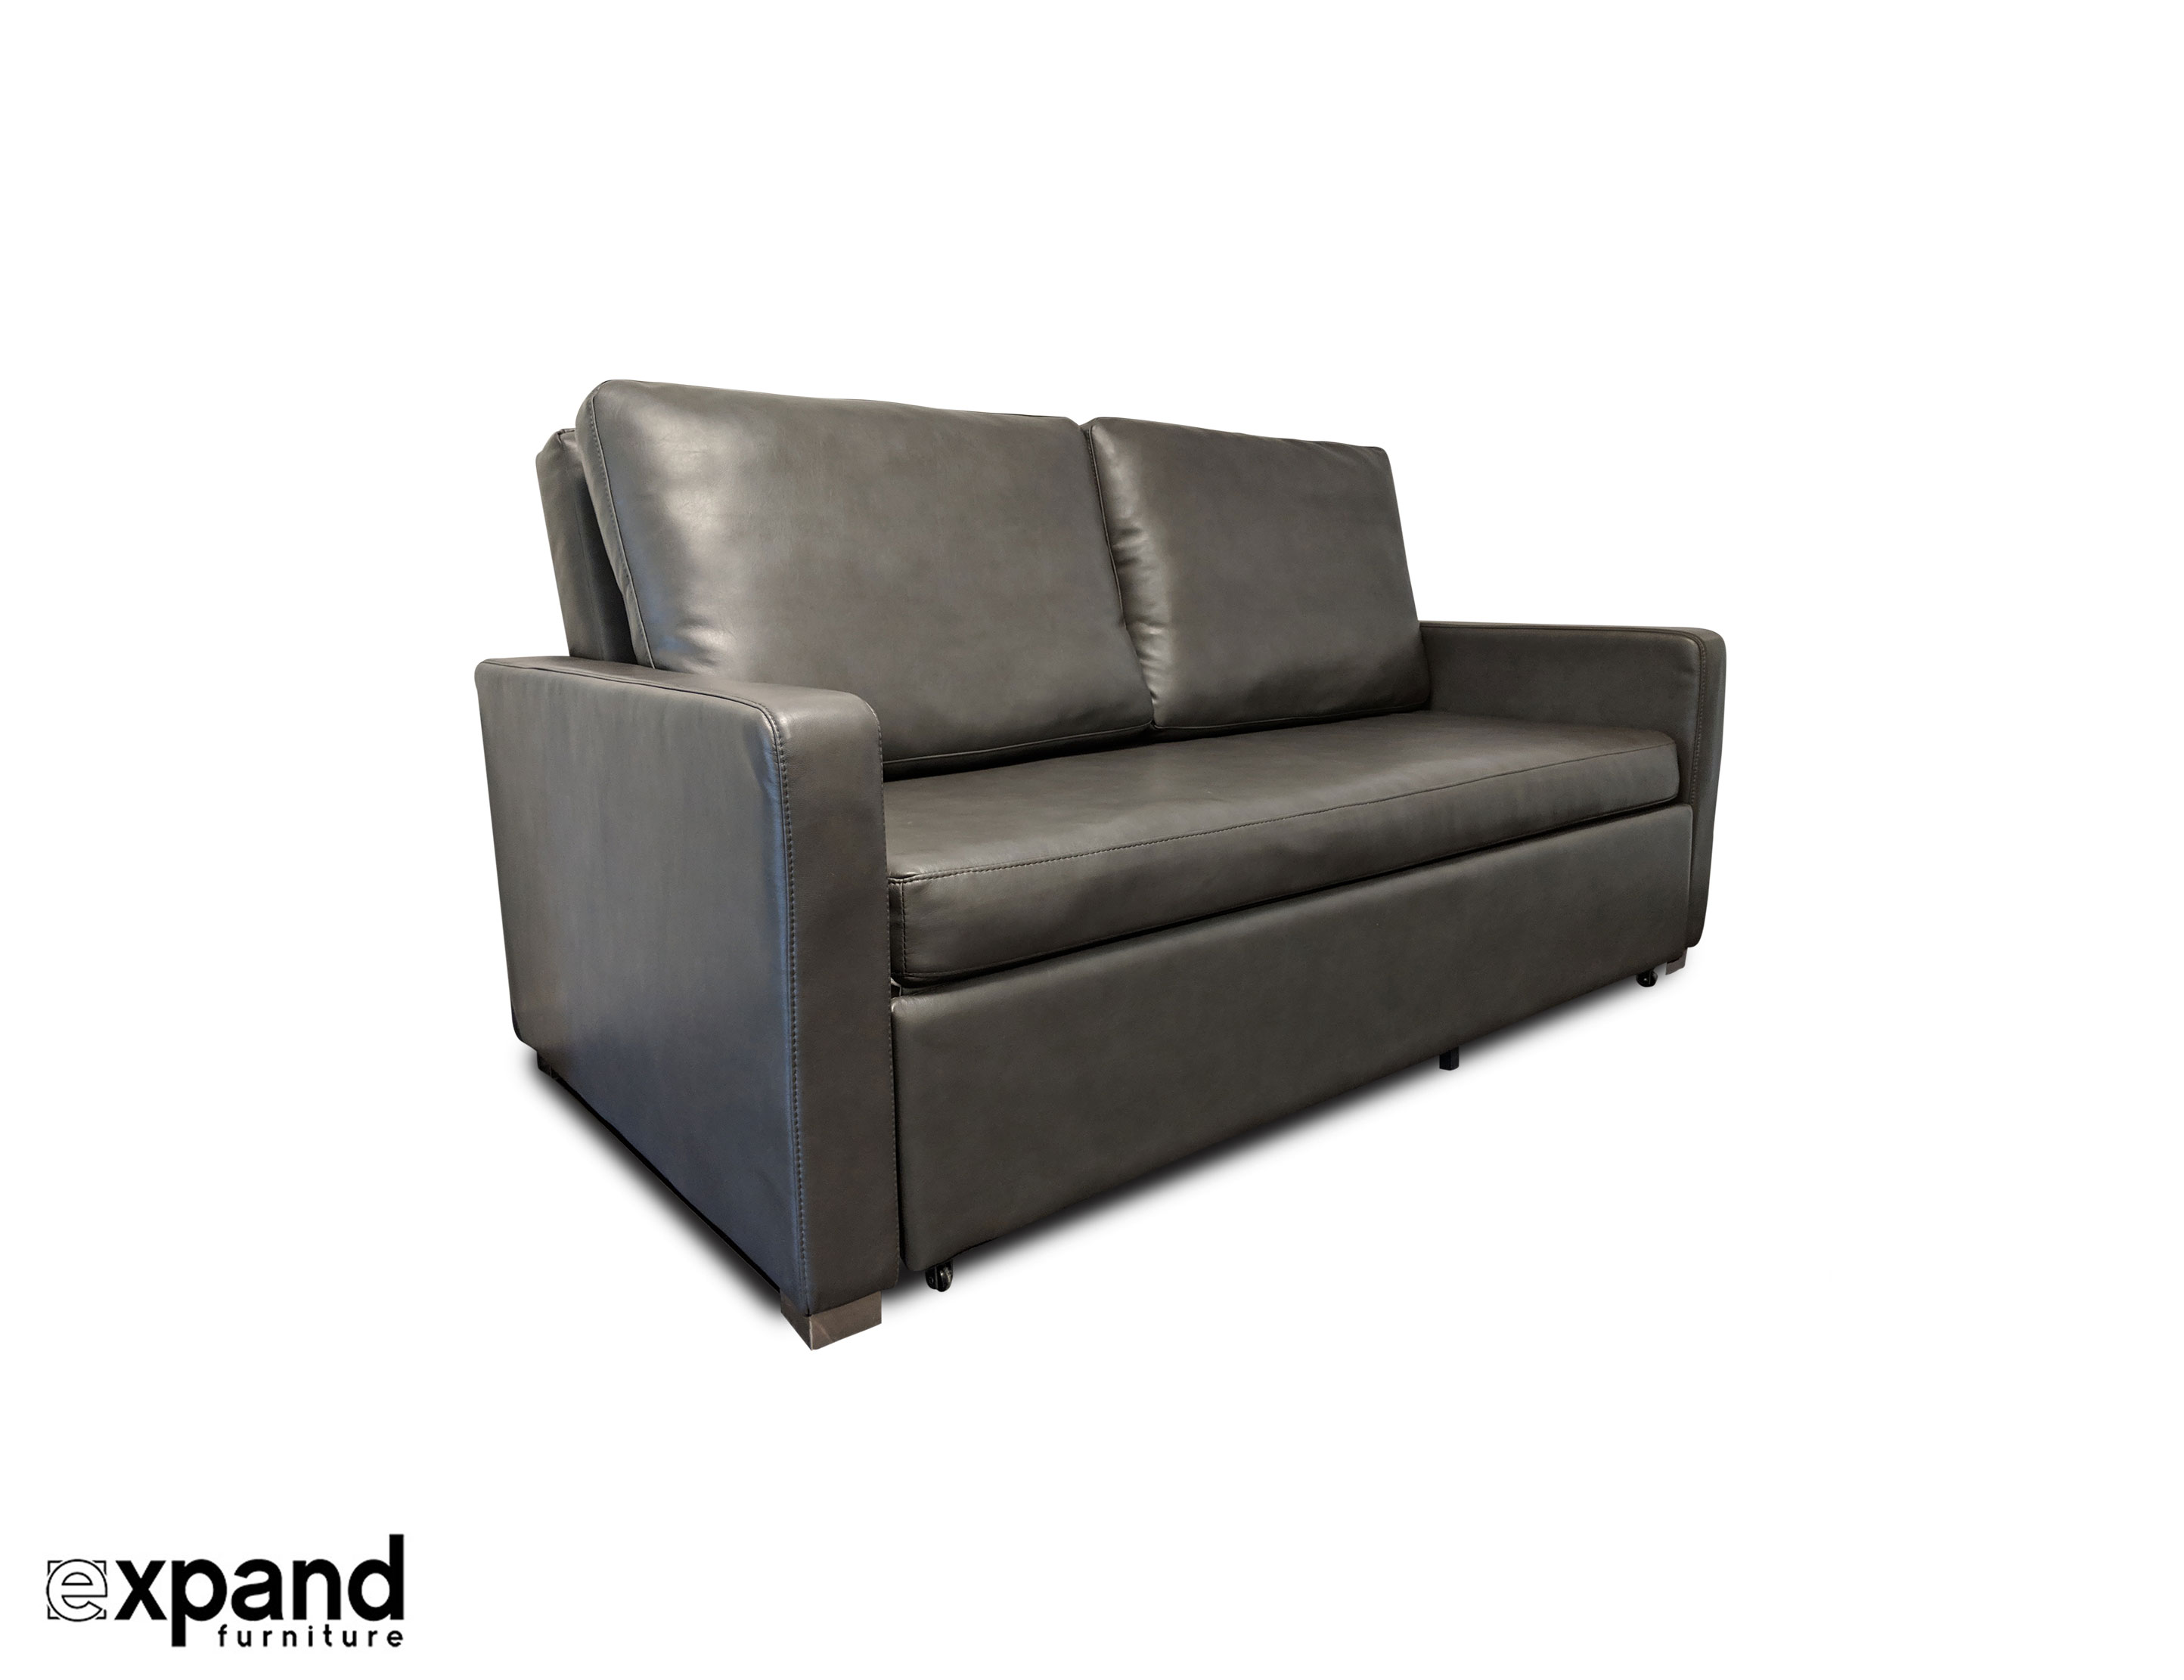 Terrific Harmony Sofa Bed Queen Eco Leather Ncnpc Chair Design For Home Ncnpcorg